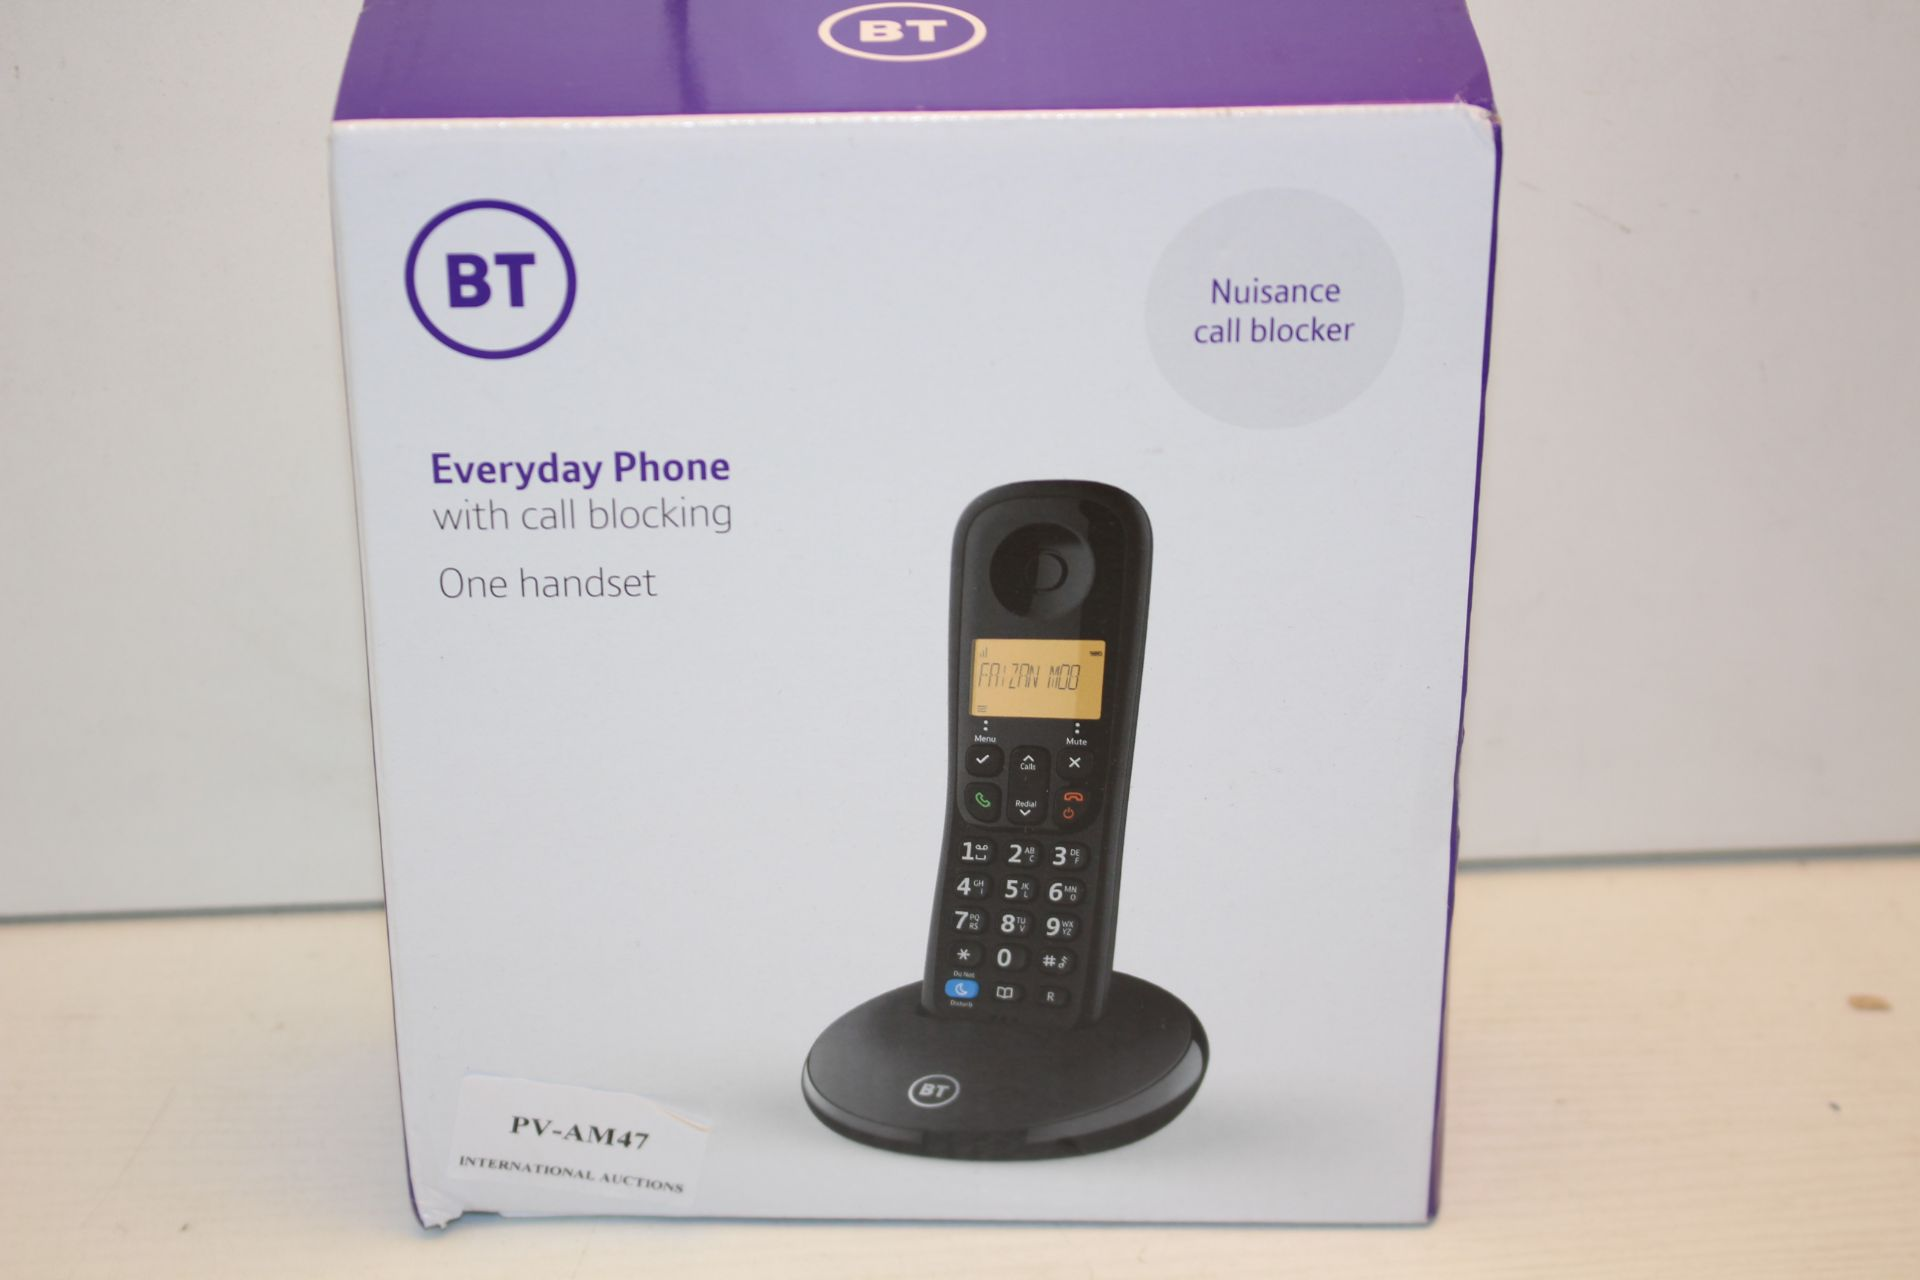 BOXED BT EVERYDAY PHONE WITH CALL BLOCKING ONE HANDSET RRP £19.99Condition ReportAppraisal Available